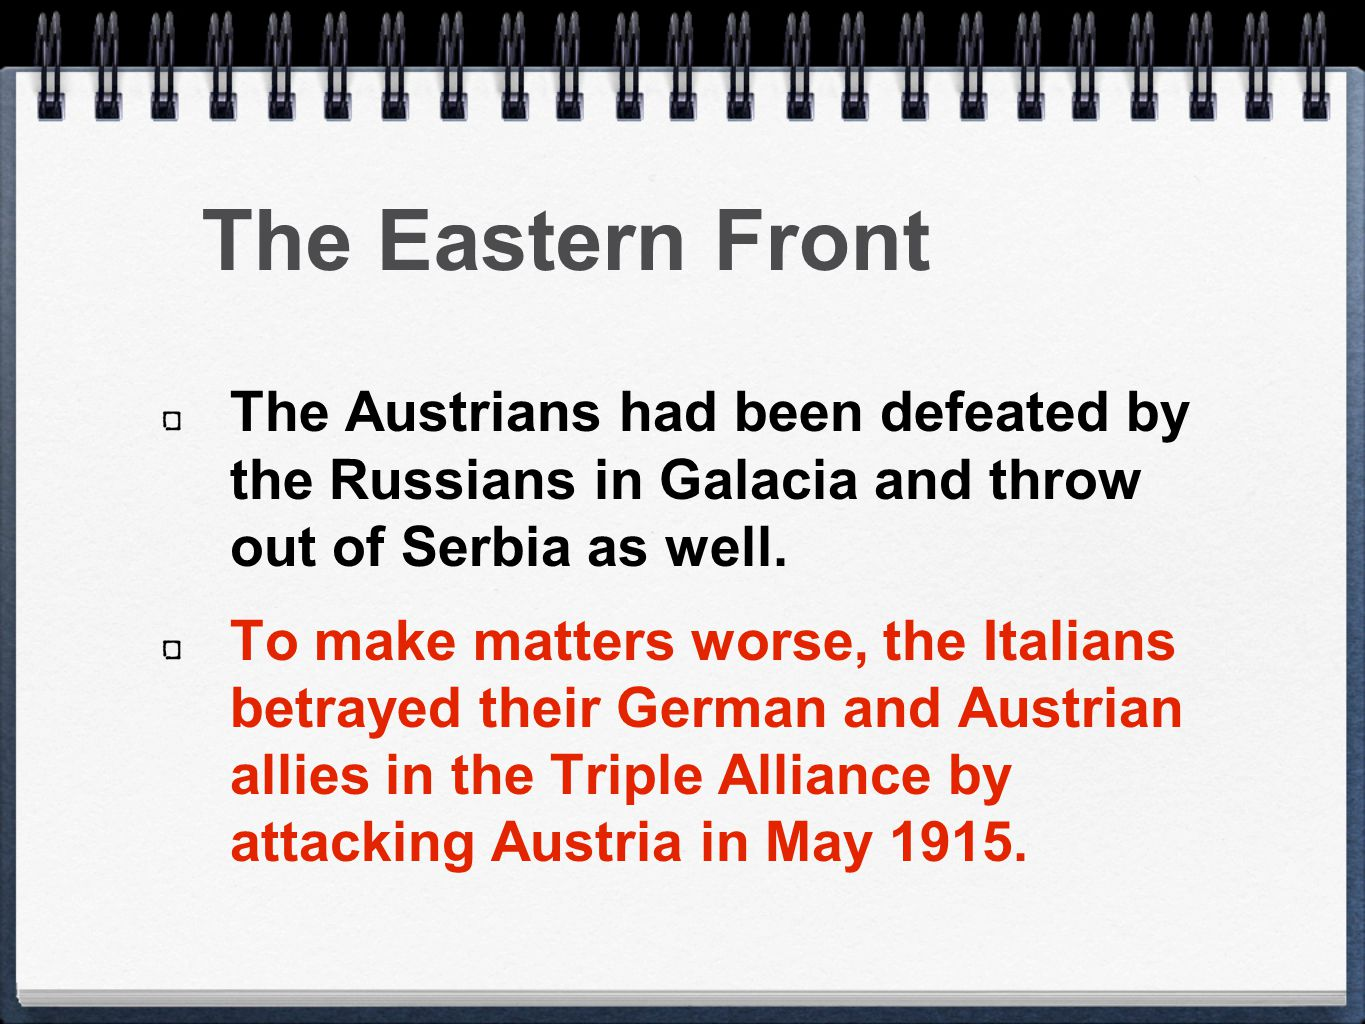 The Eastern Front The Austrians had been defeated by the Russians in Galacia and throw out of Serbia as well.